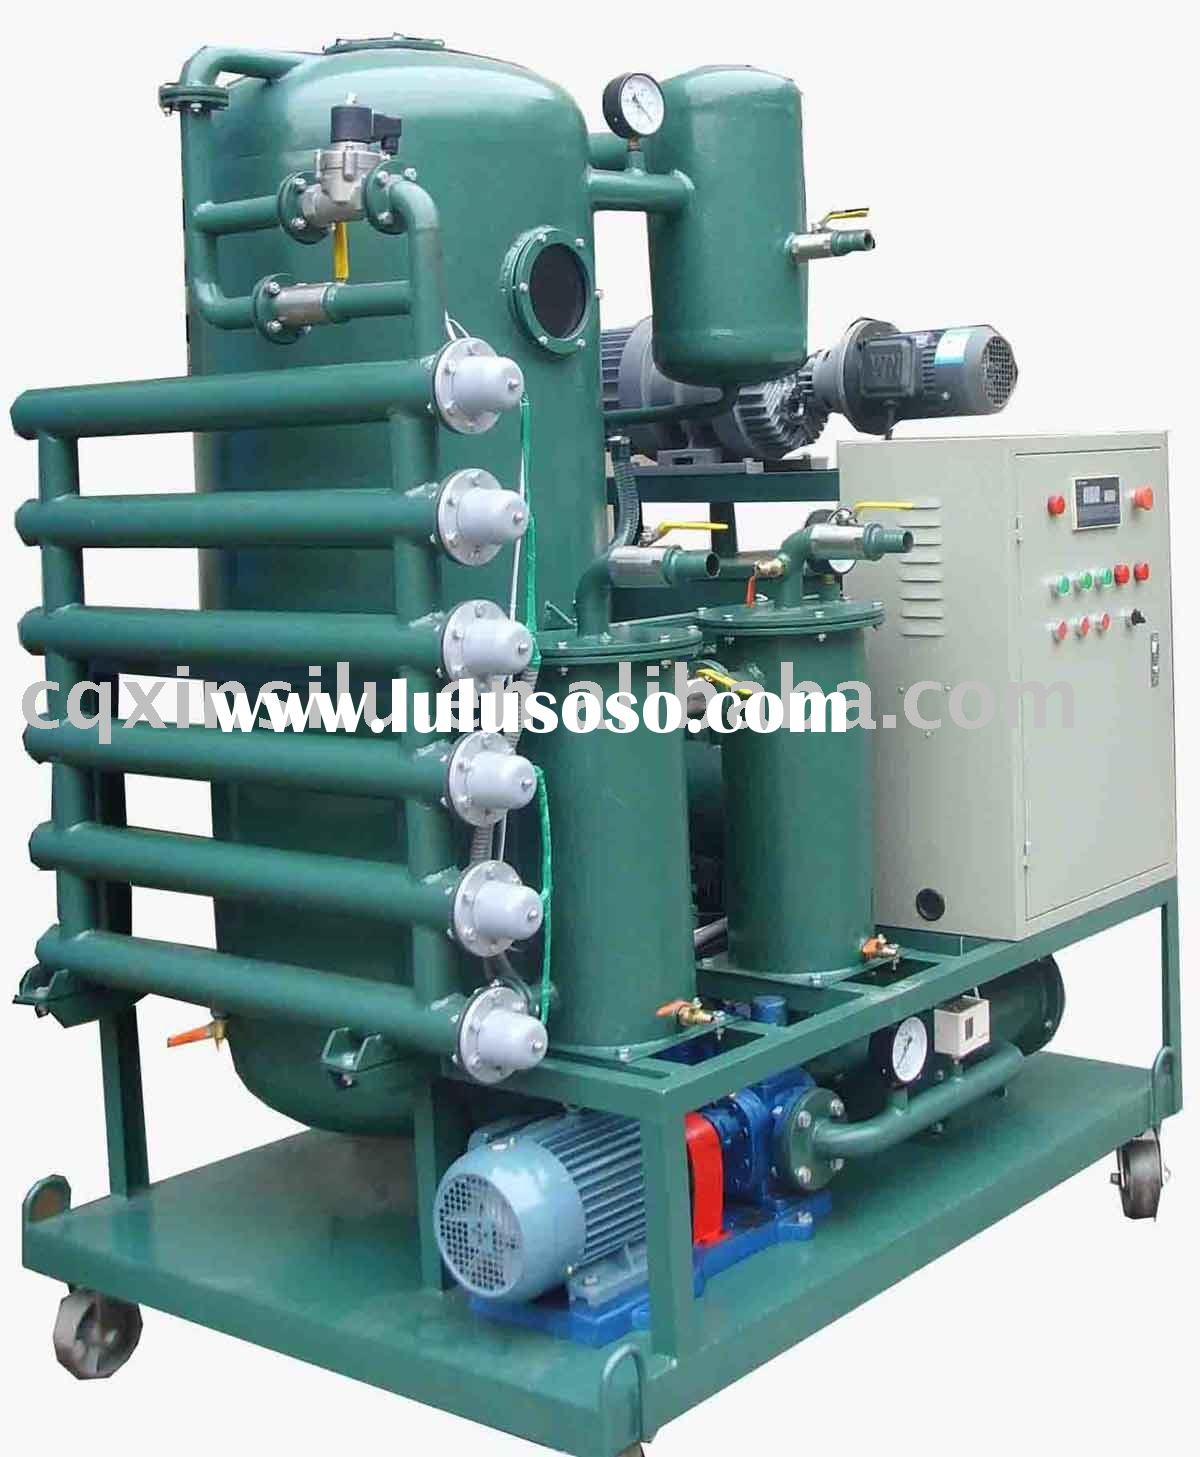 XL-110J vacuum waste oil cleaning equipment